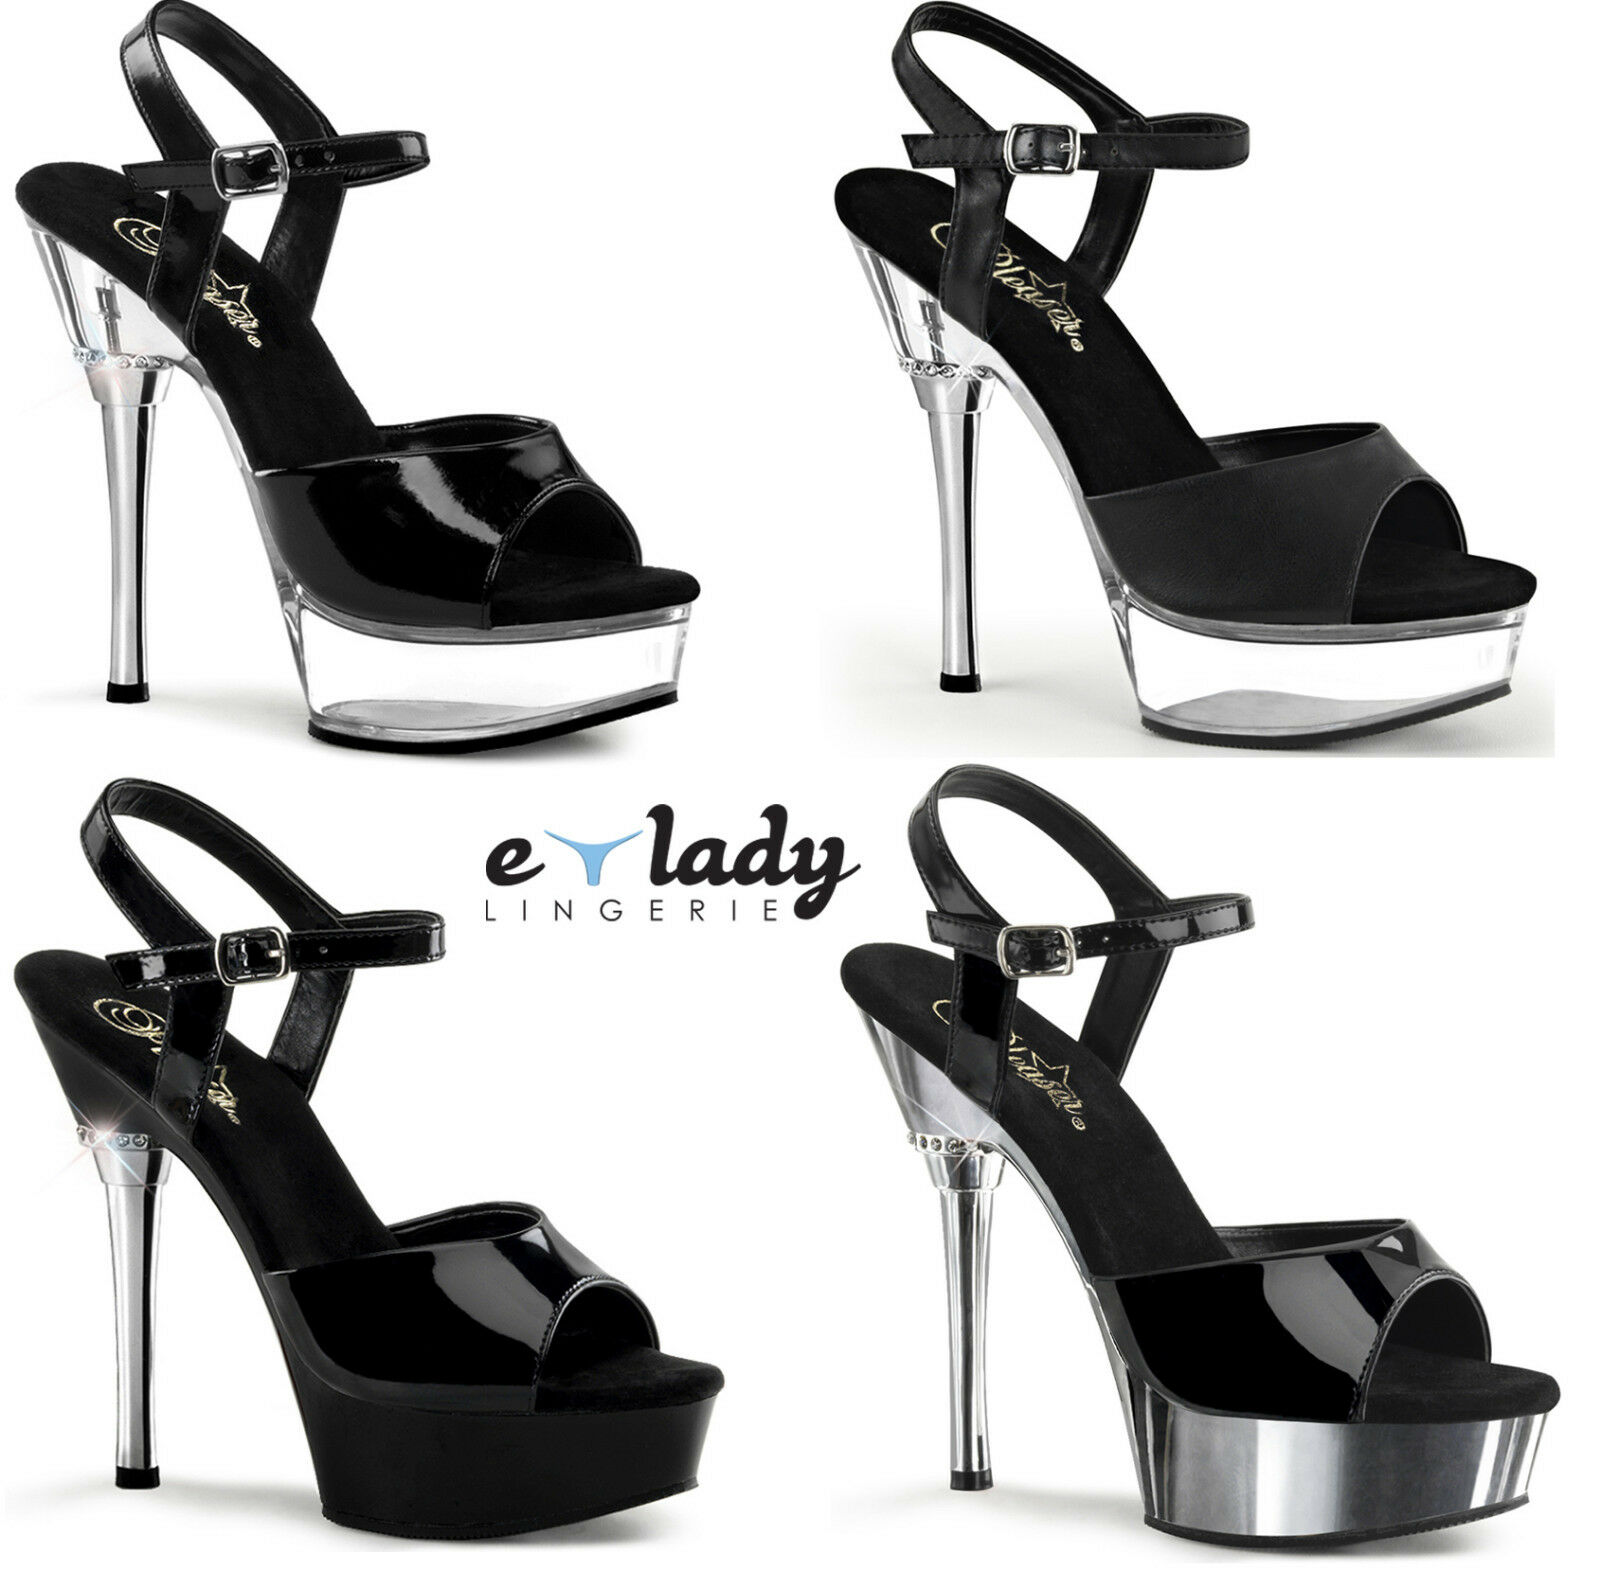 Pleaser Allure-609 Schuhes Platform Sandales Ankle Strap High Heels Pole Dancing